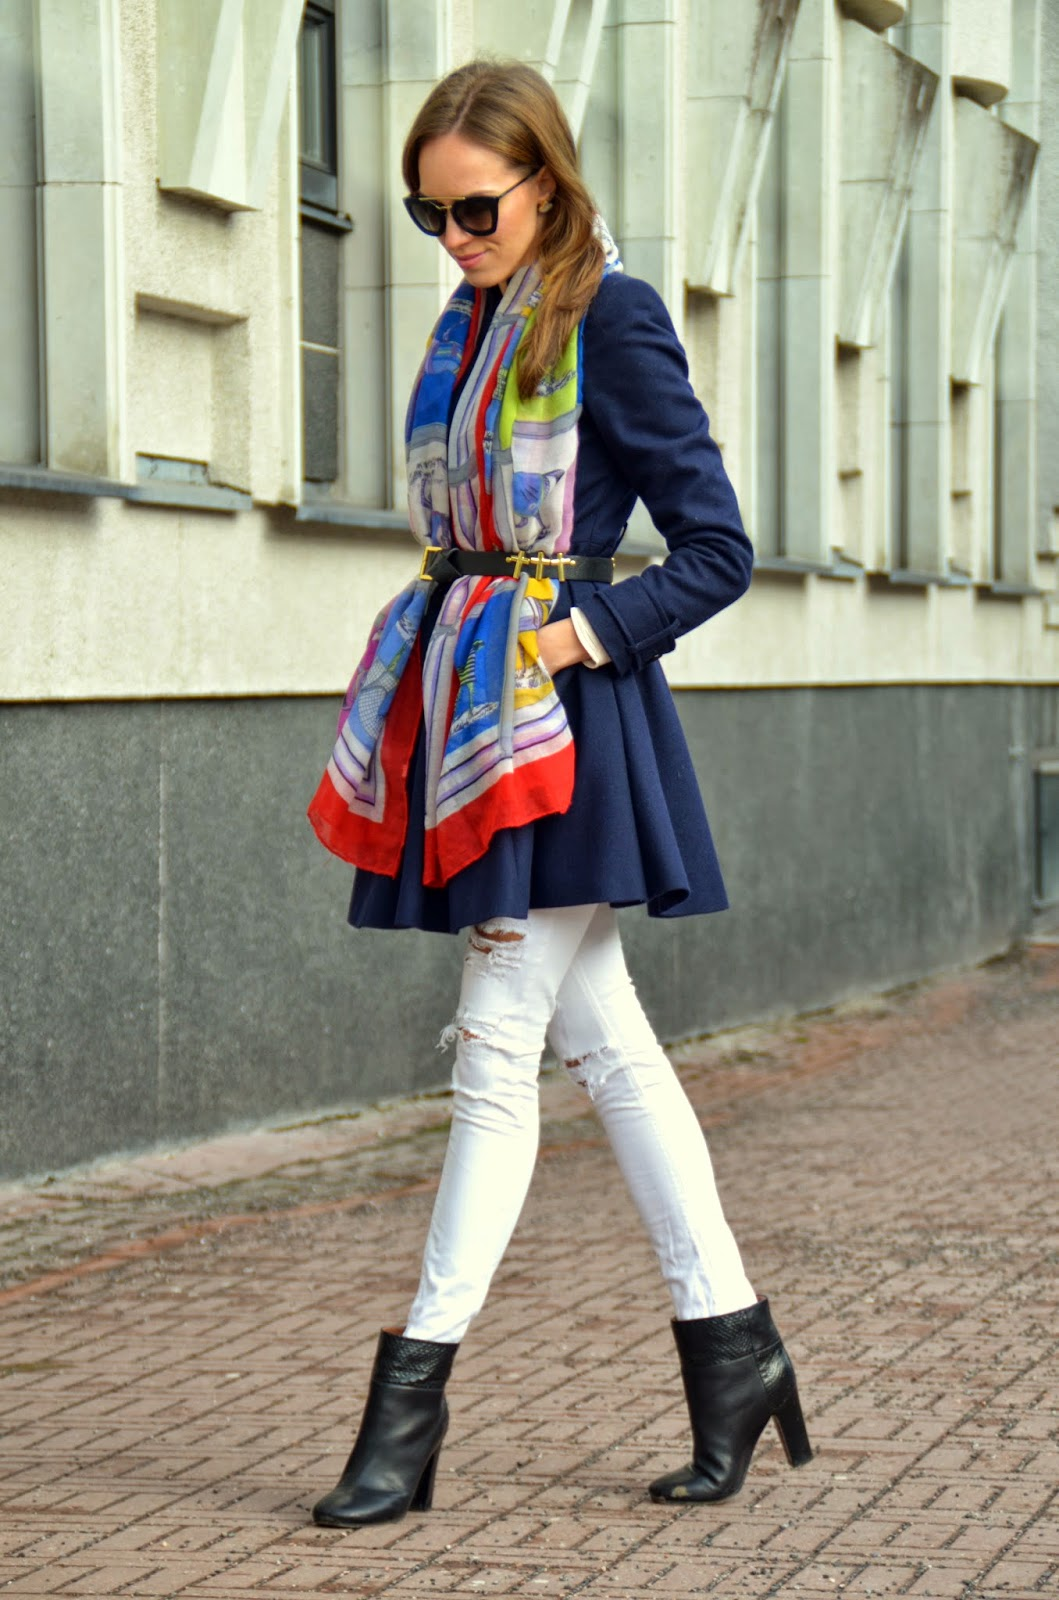 spring-outfit-fashion-blue-coat-scarf-white-jeans-ankle-boots kristjaana mere